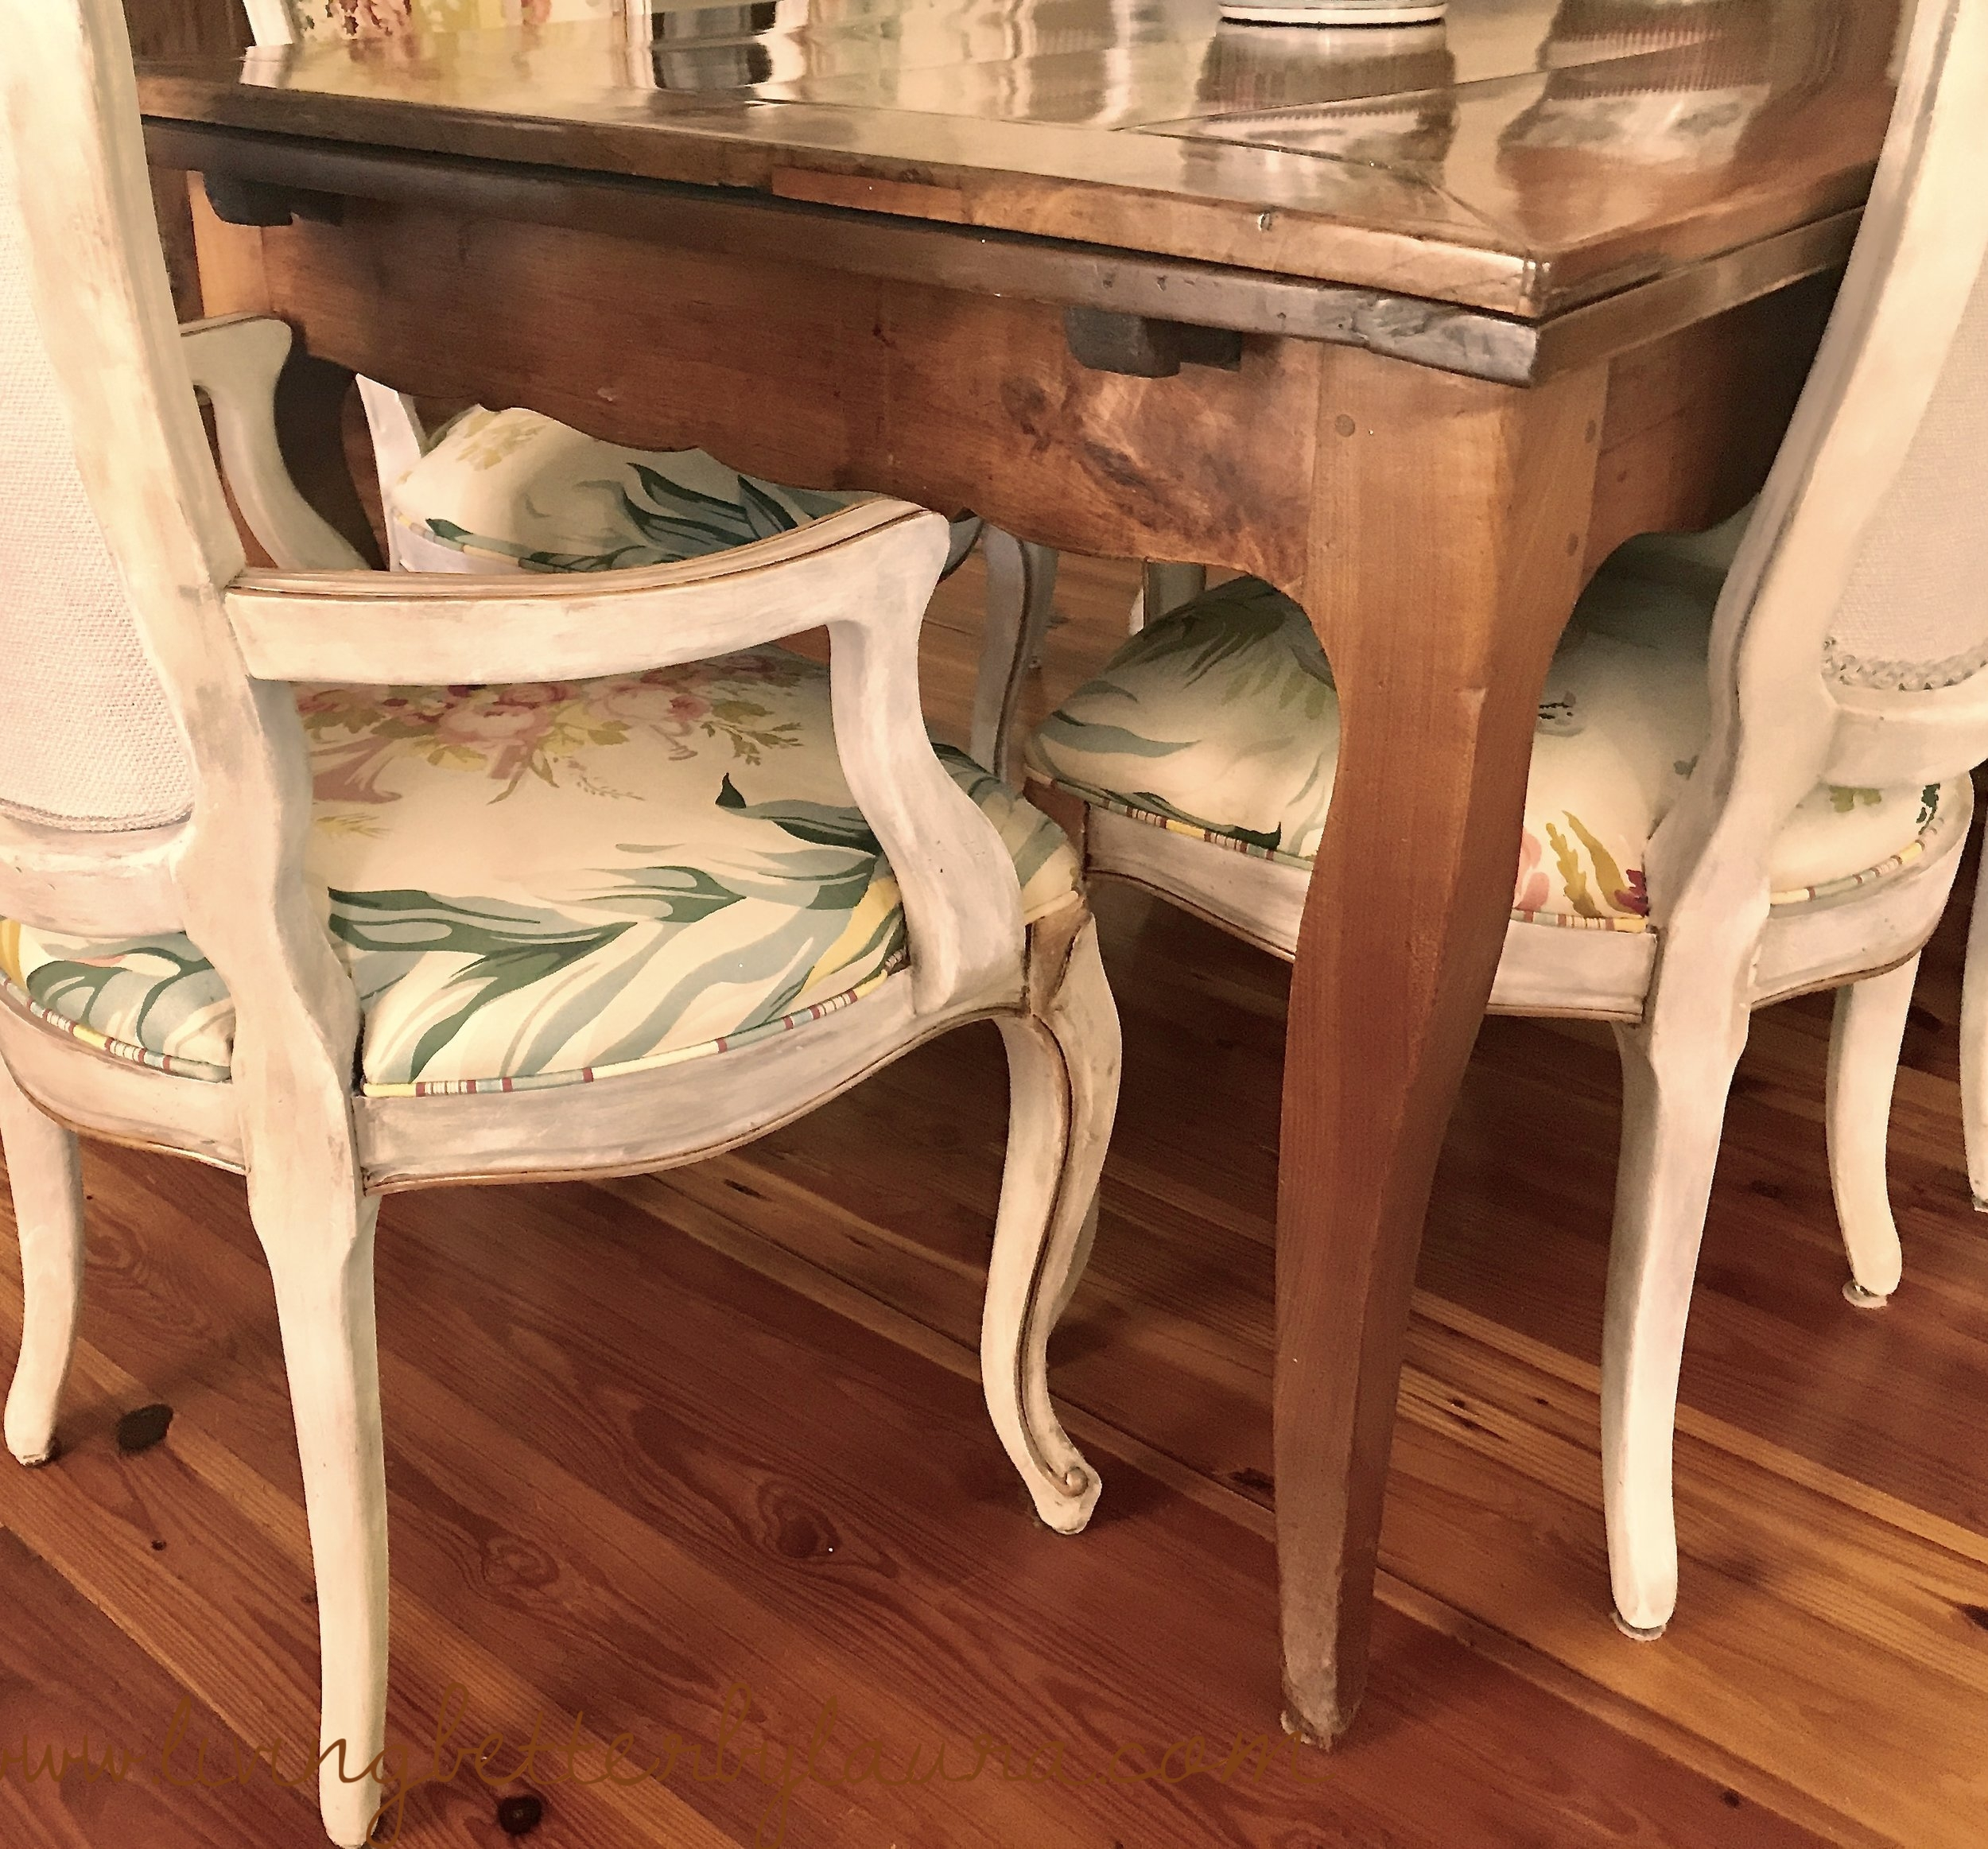 countless families have enjoyed meals on this 18th century antique French draw table over time,including mine. The Chairs are reproduction that I have refinished - post to follow soon.